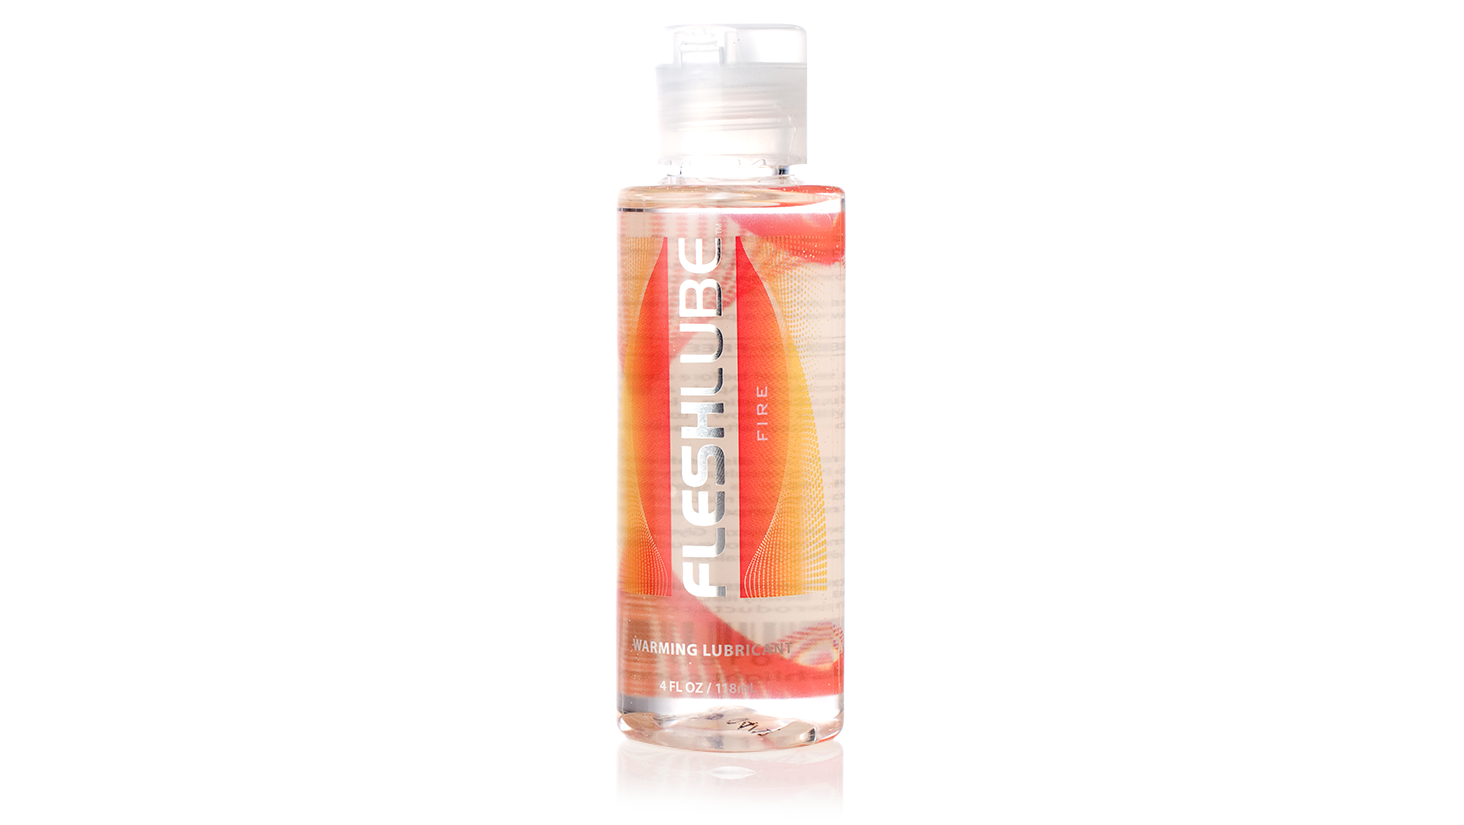 Fleshlube® Fire (4 oz) slider image.